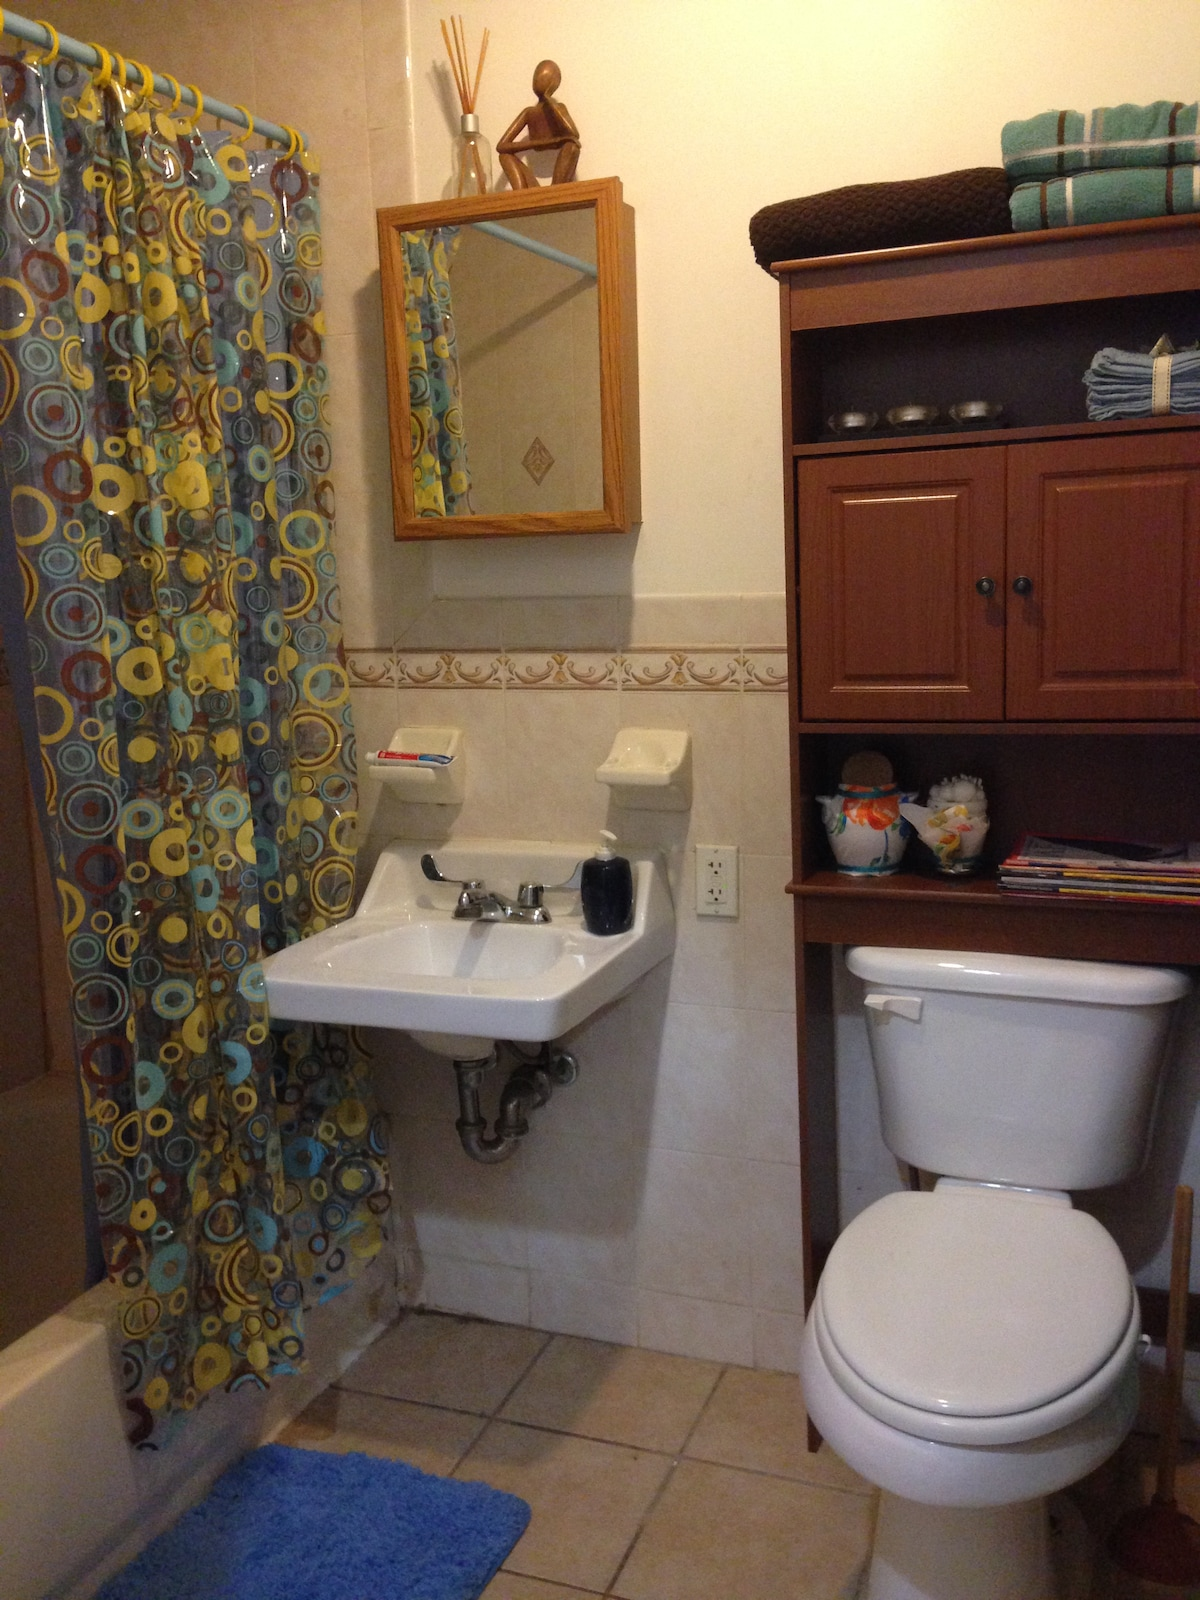 Your clean, private bathroom with full bathtub and shower is adjacent to your room. Towels, wash cloths, and hair dryer provided.